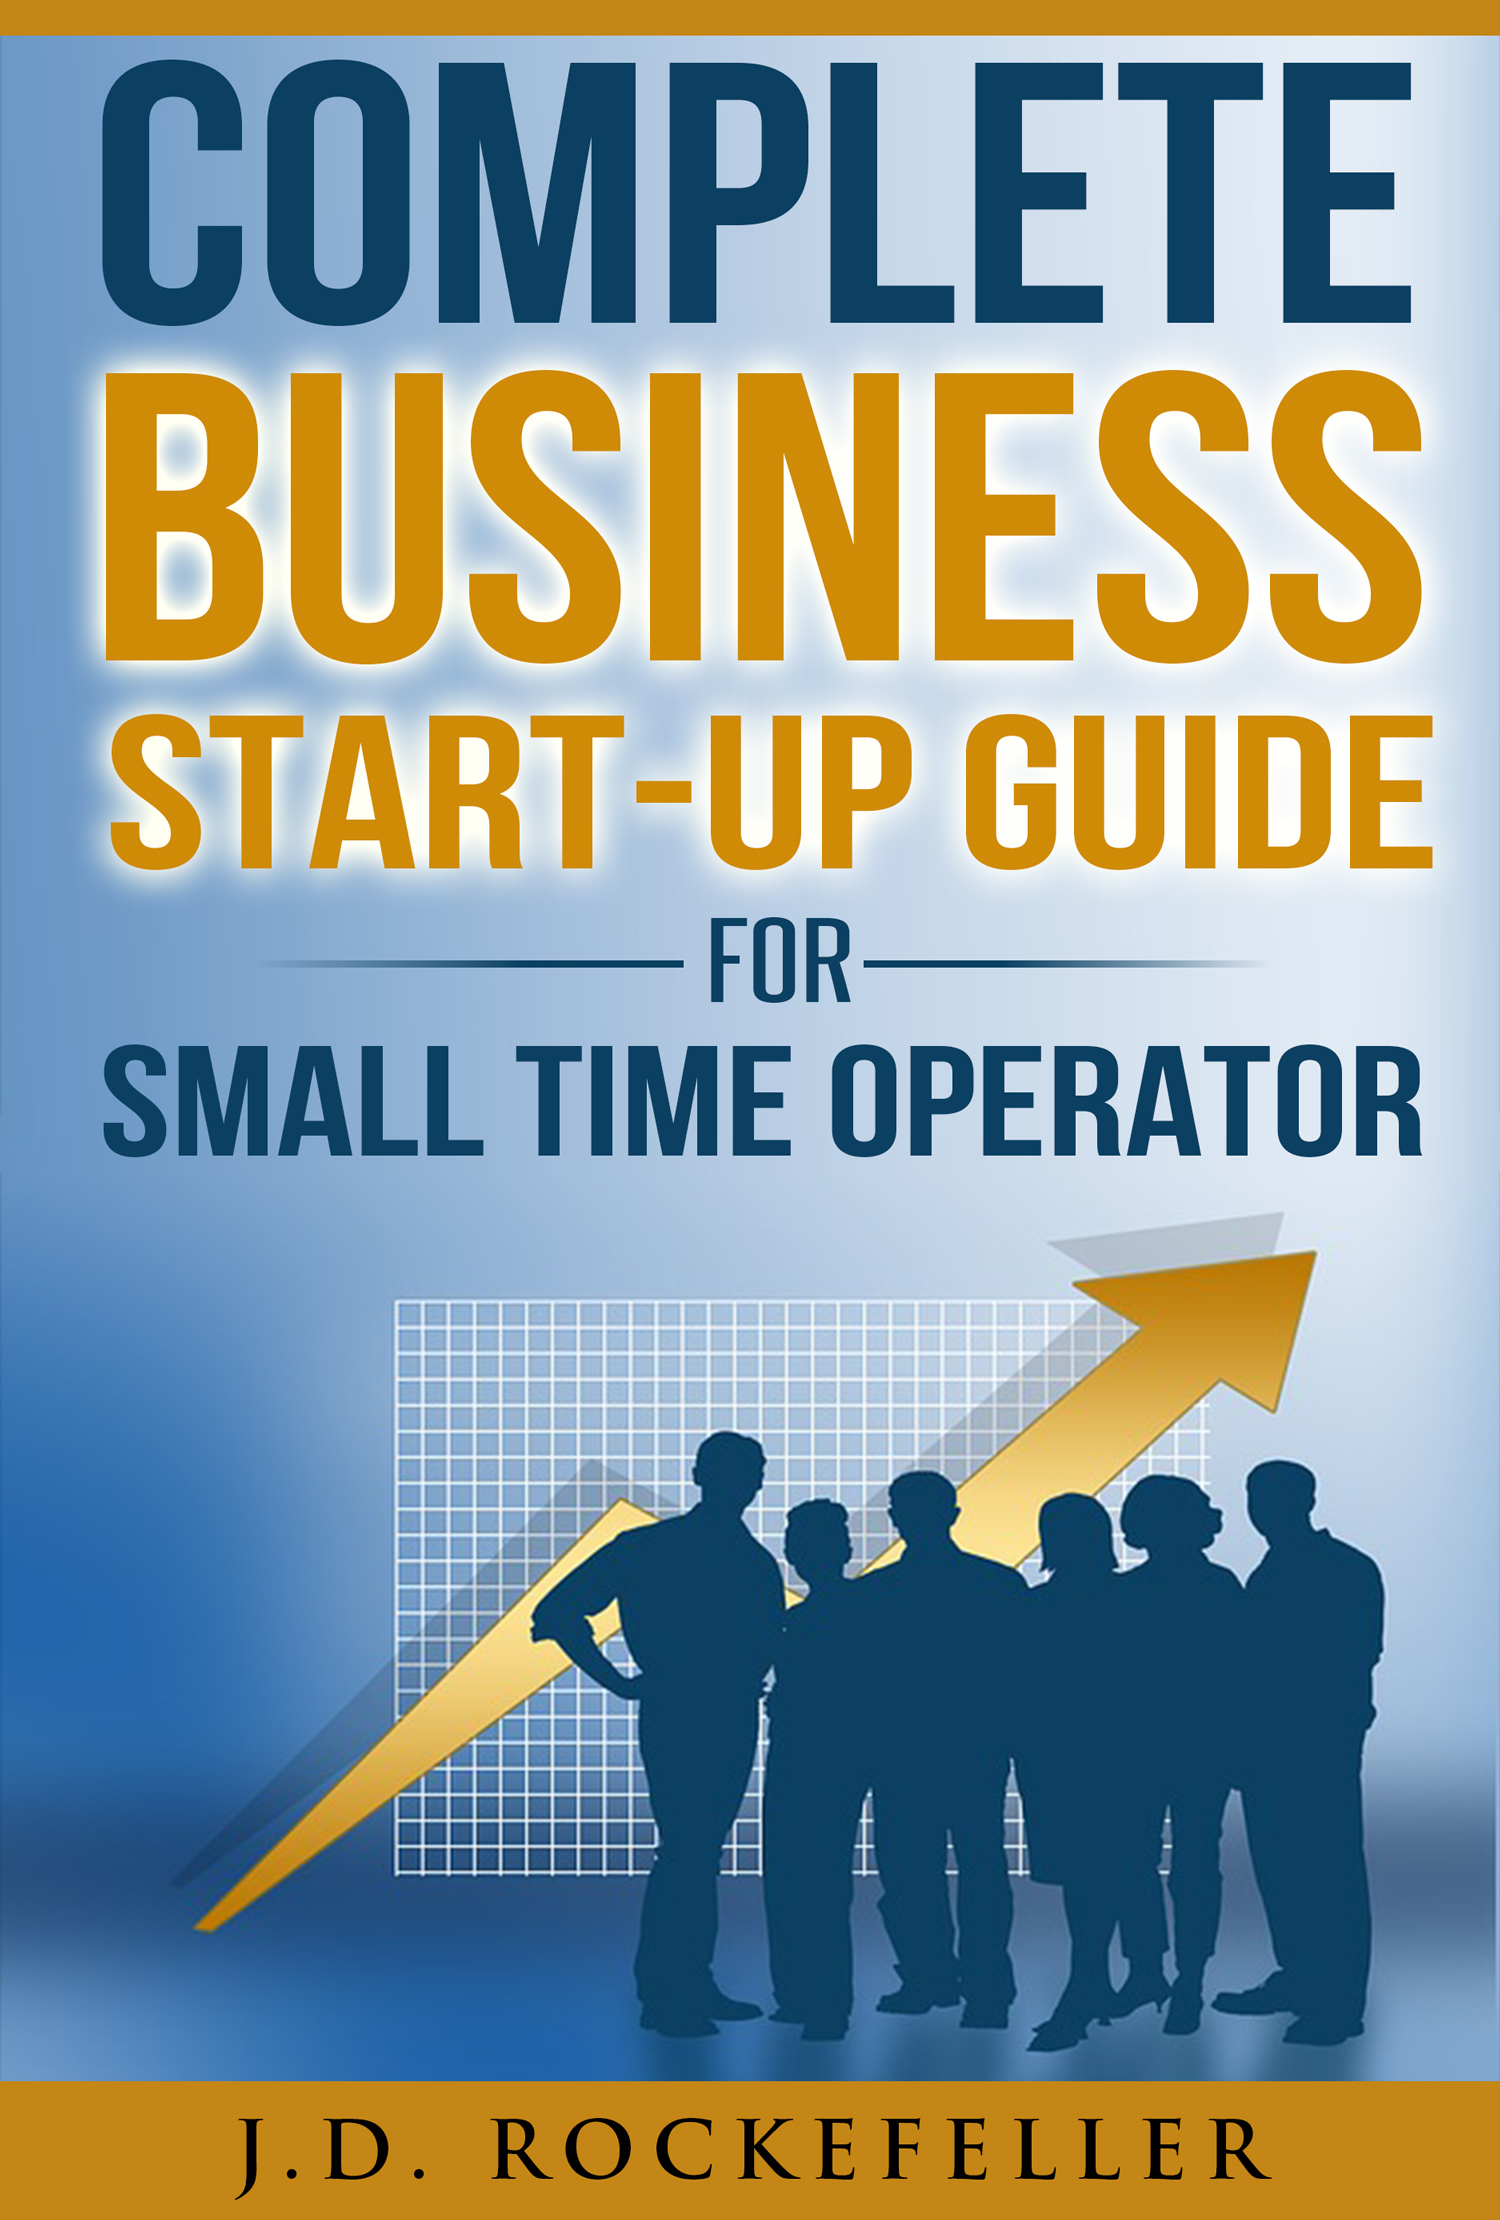 Complete Business Start-Up Guide For Small Time Operator  by  J.D. Rockefeller